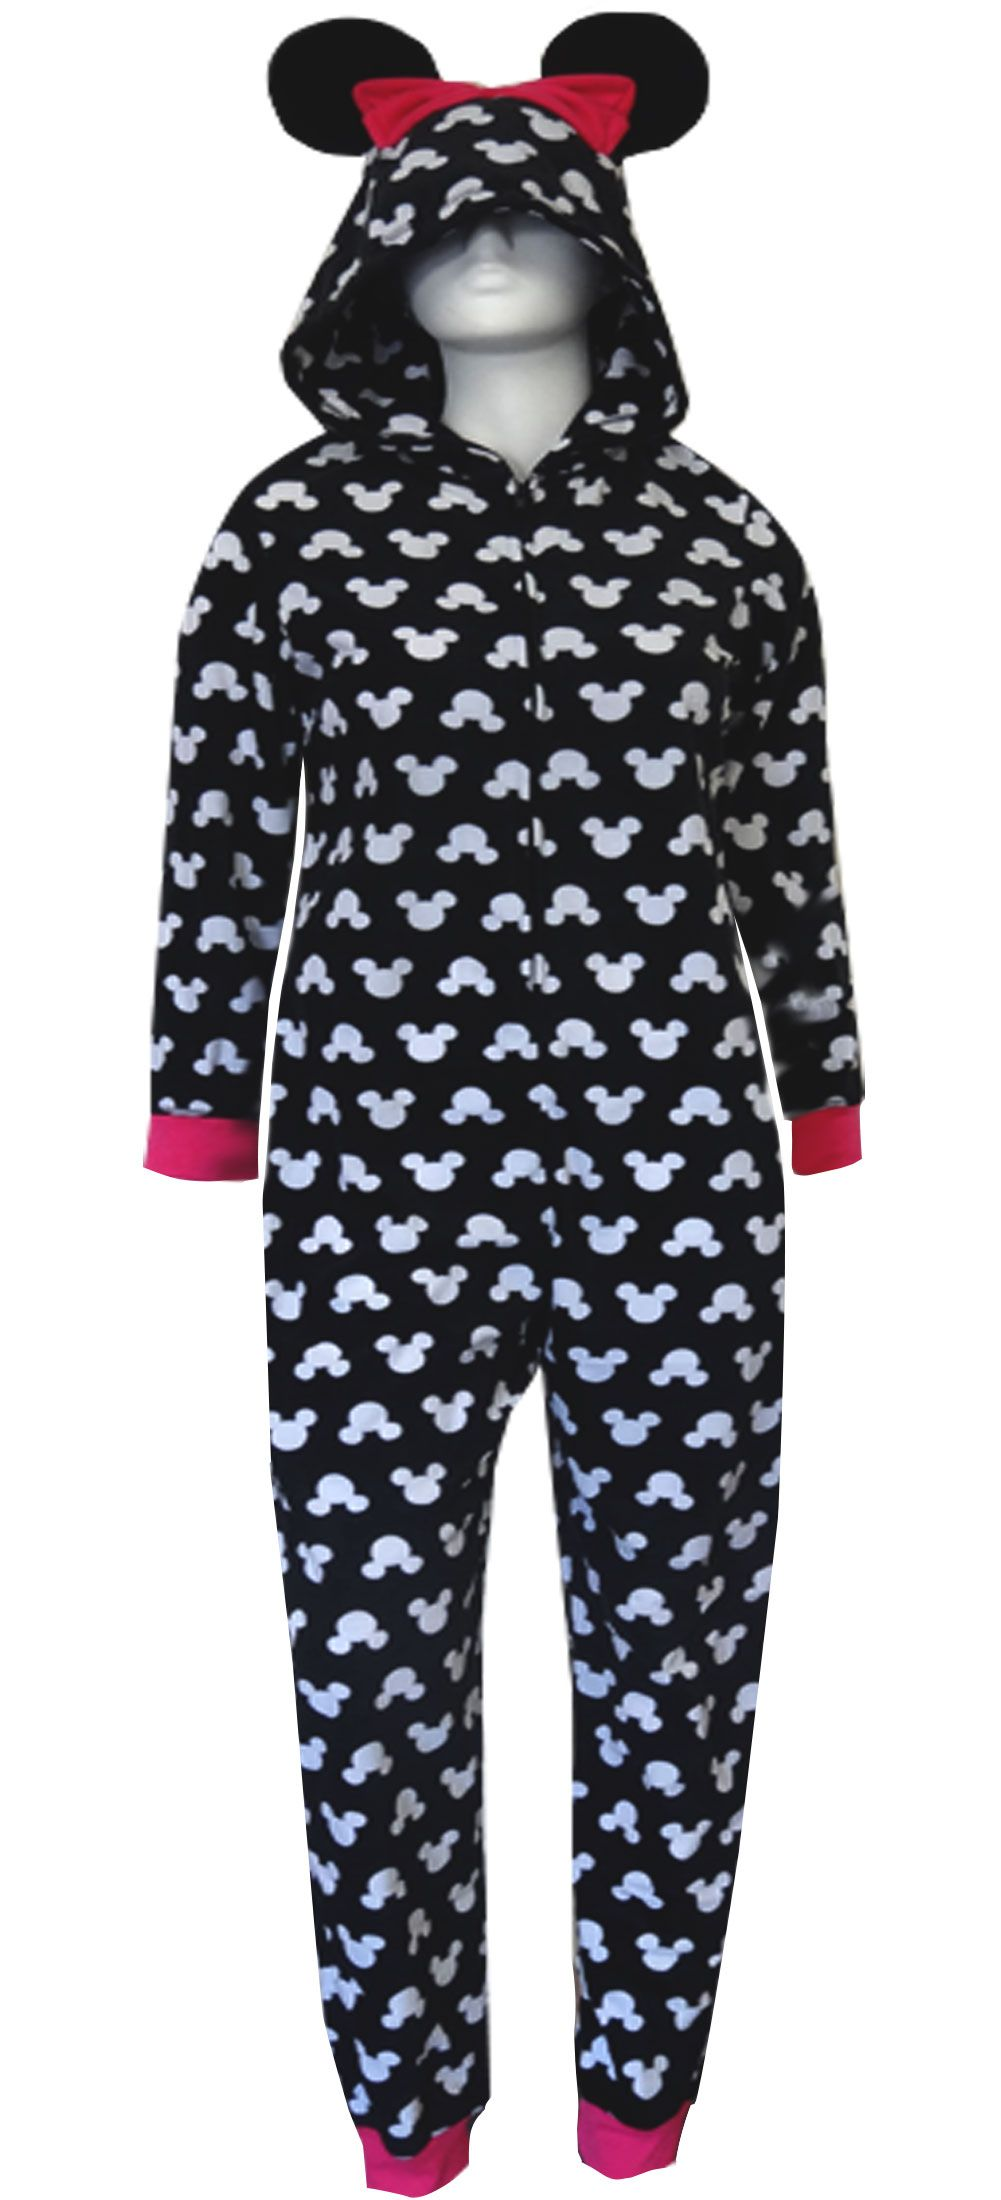 WebUndies.com Disney s Minnie Ears On Black Hooded Onesie Pajama ... b3e80158a